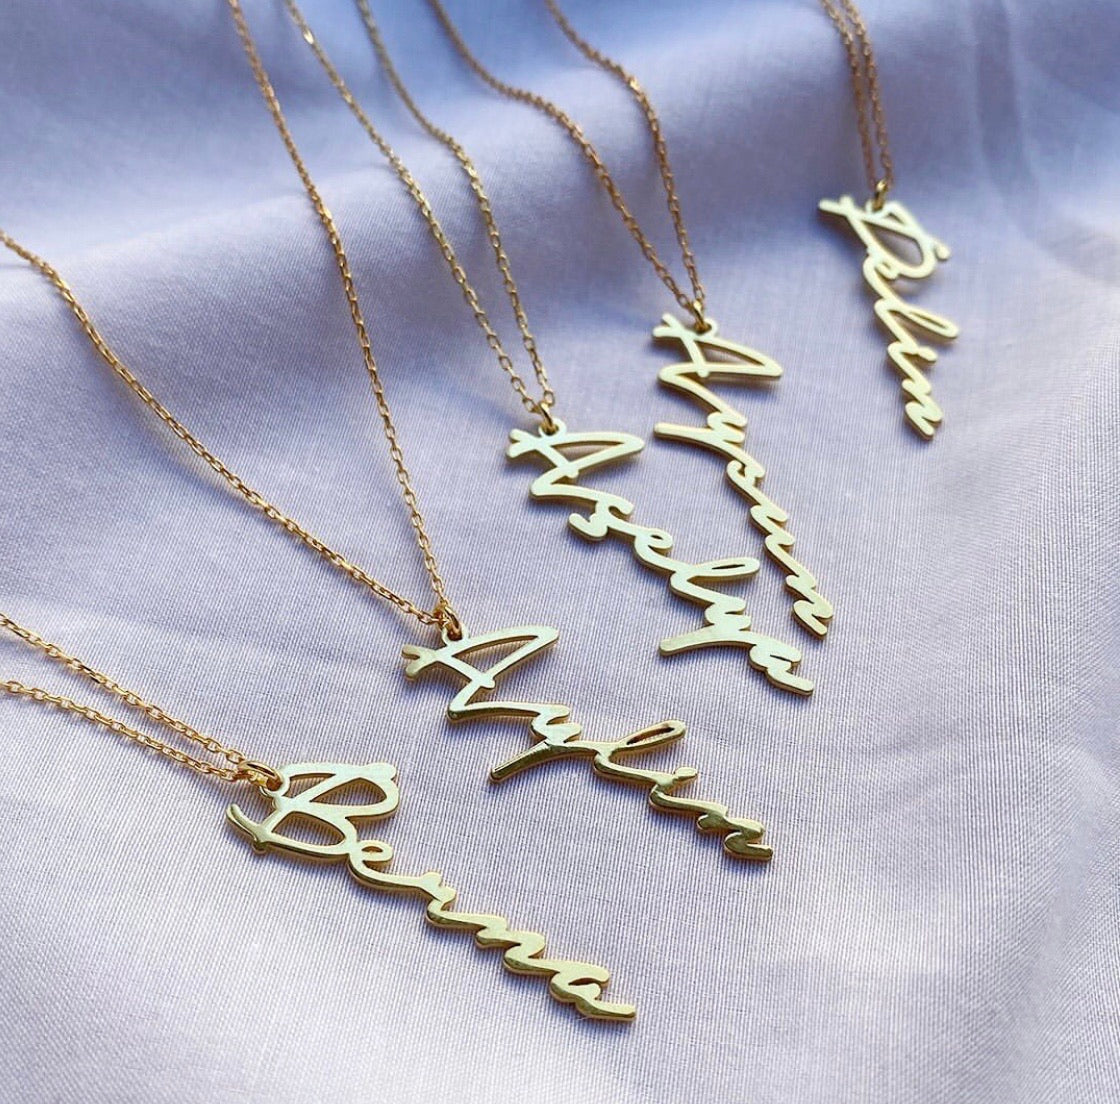 Personalized cursive name necklace silver gold plated